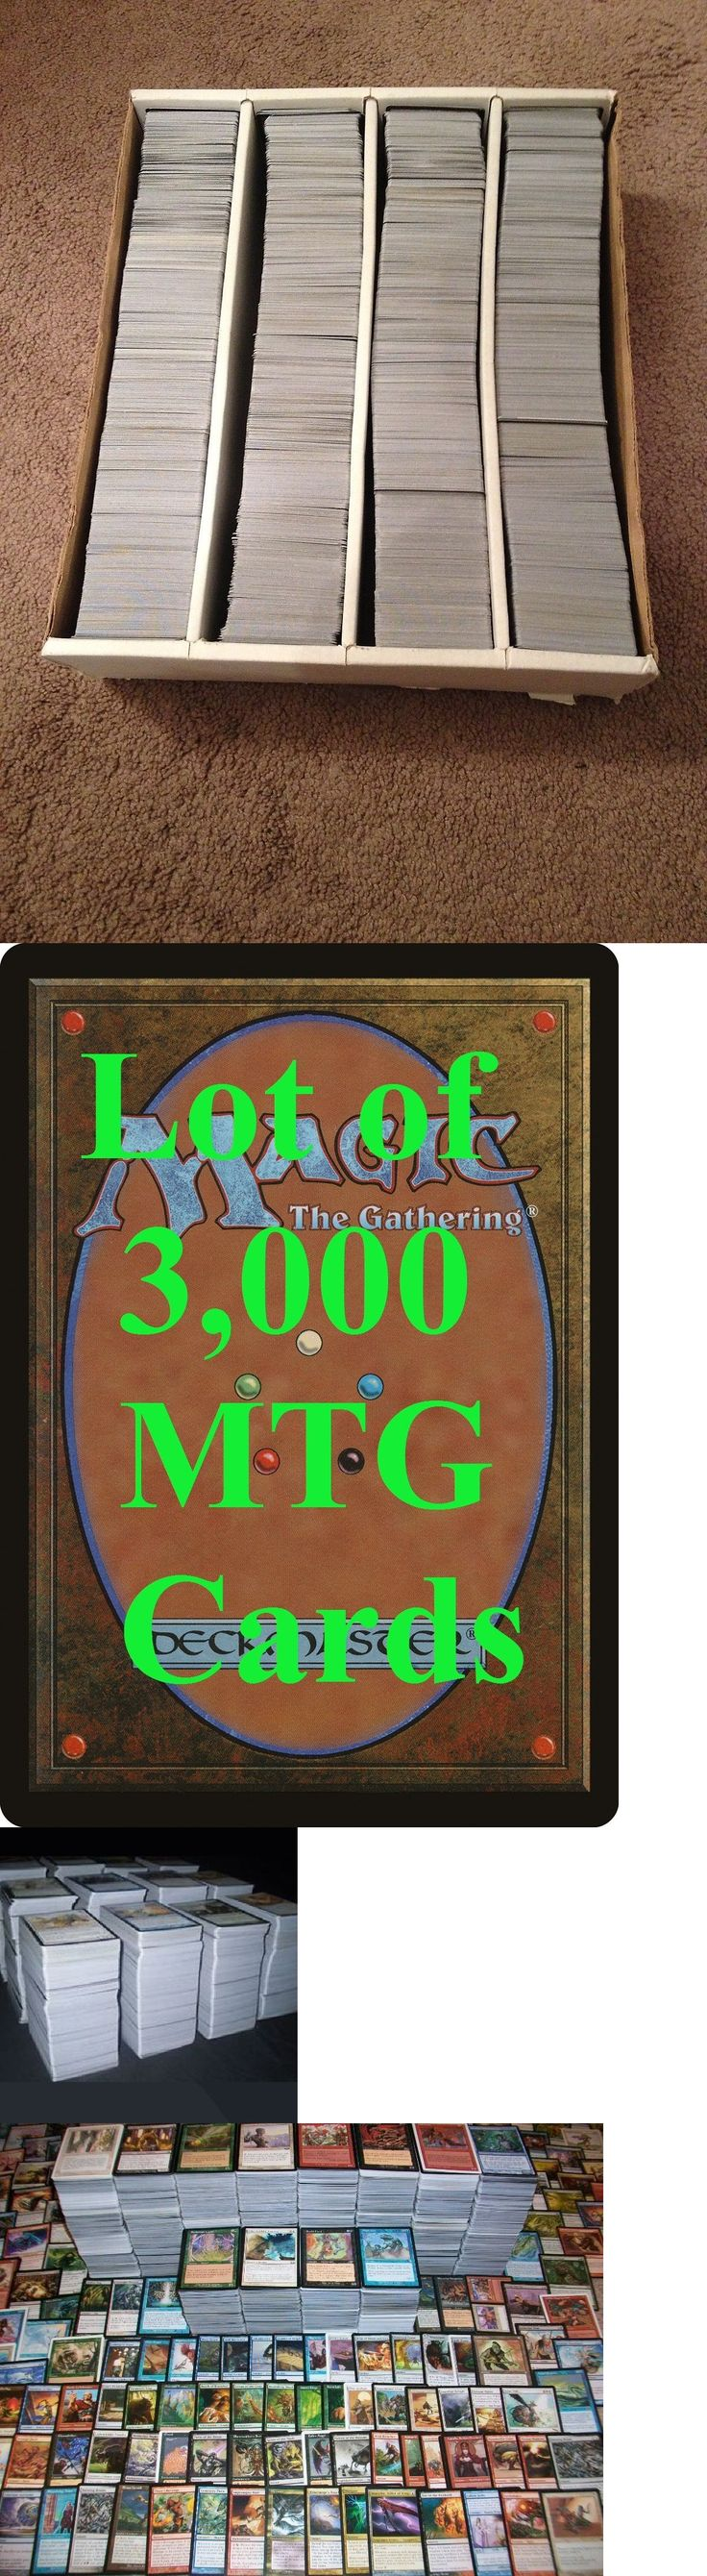 MTG Mixed Card Lots 19113: 3,000+ Random Magic The Gathering Cards - 3K Mtg Unsearched Cards Collection Lot -> BUY IT NOW ONLY: $79.99 on eBay!